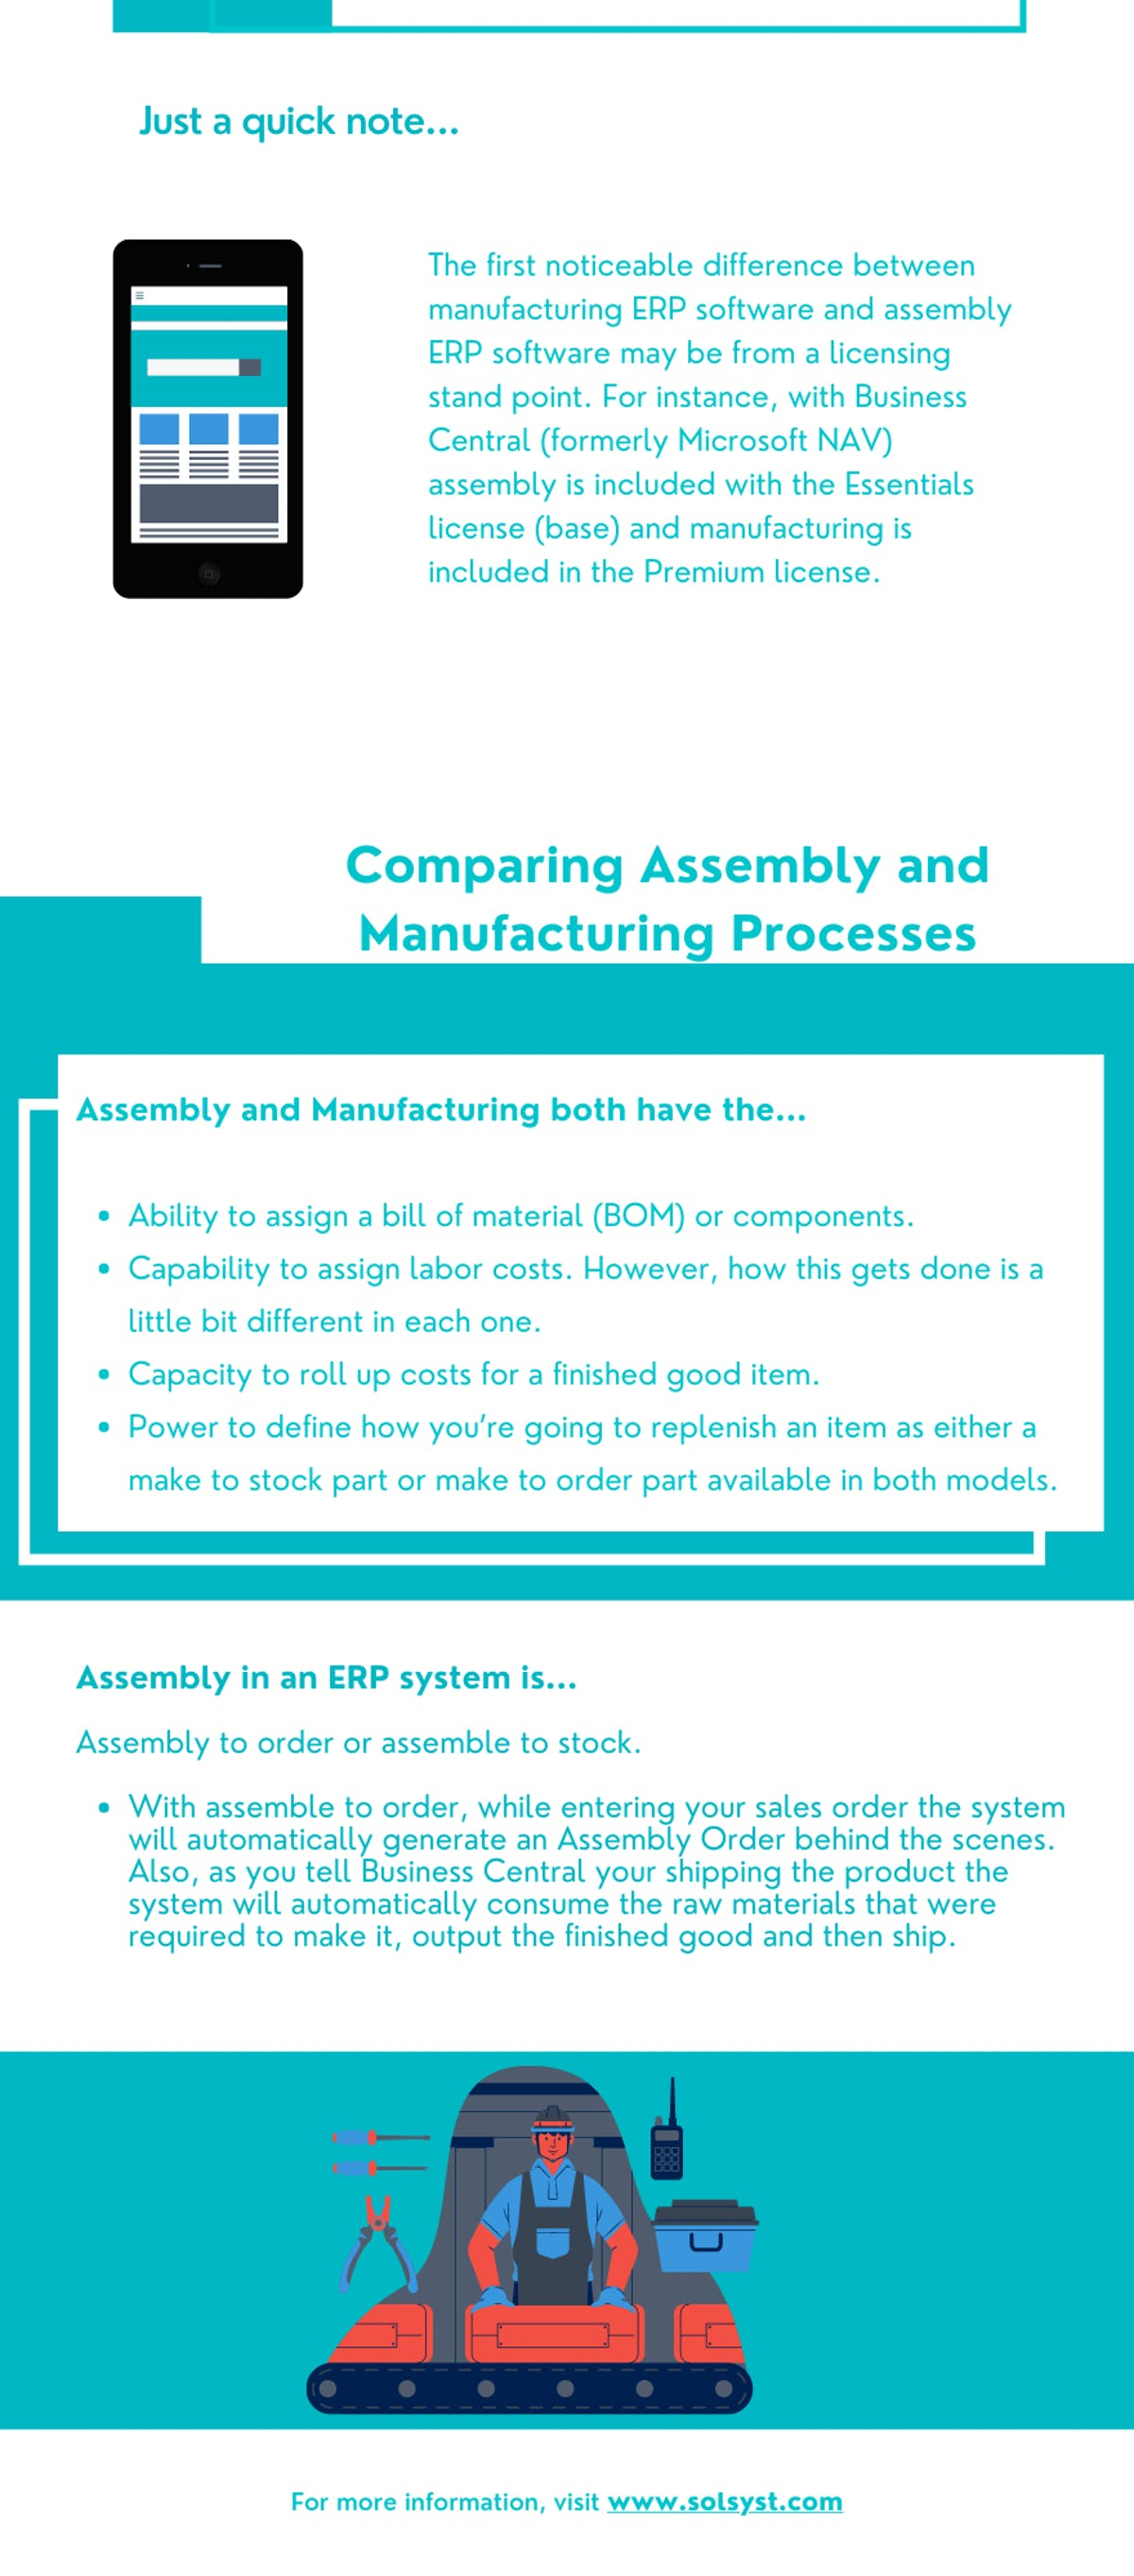 Manufacturing and Assembly distinguishing characteristics in Business Central